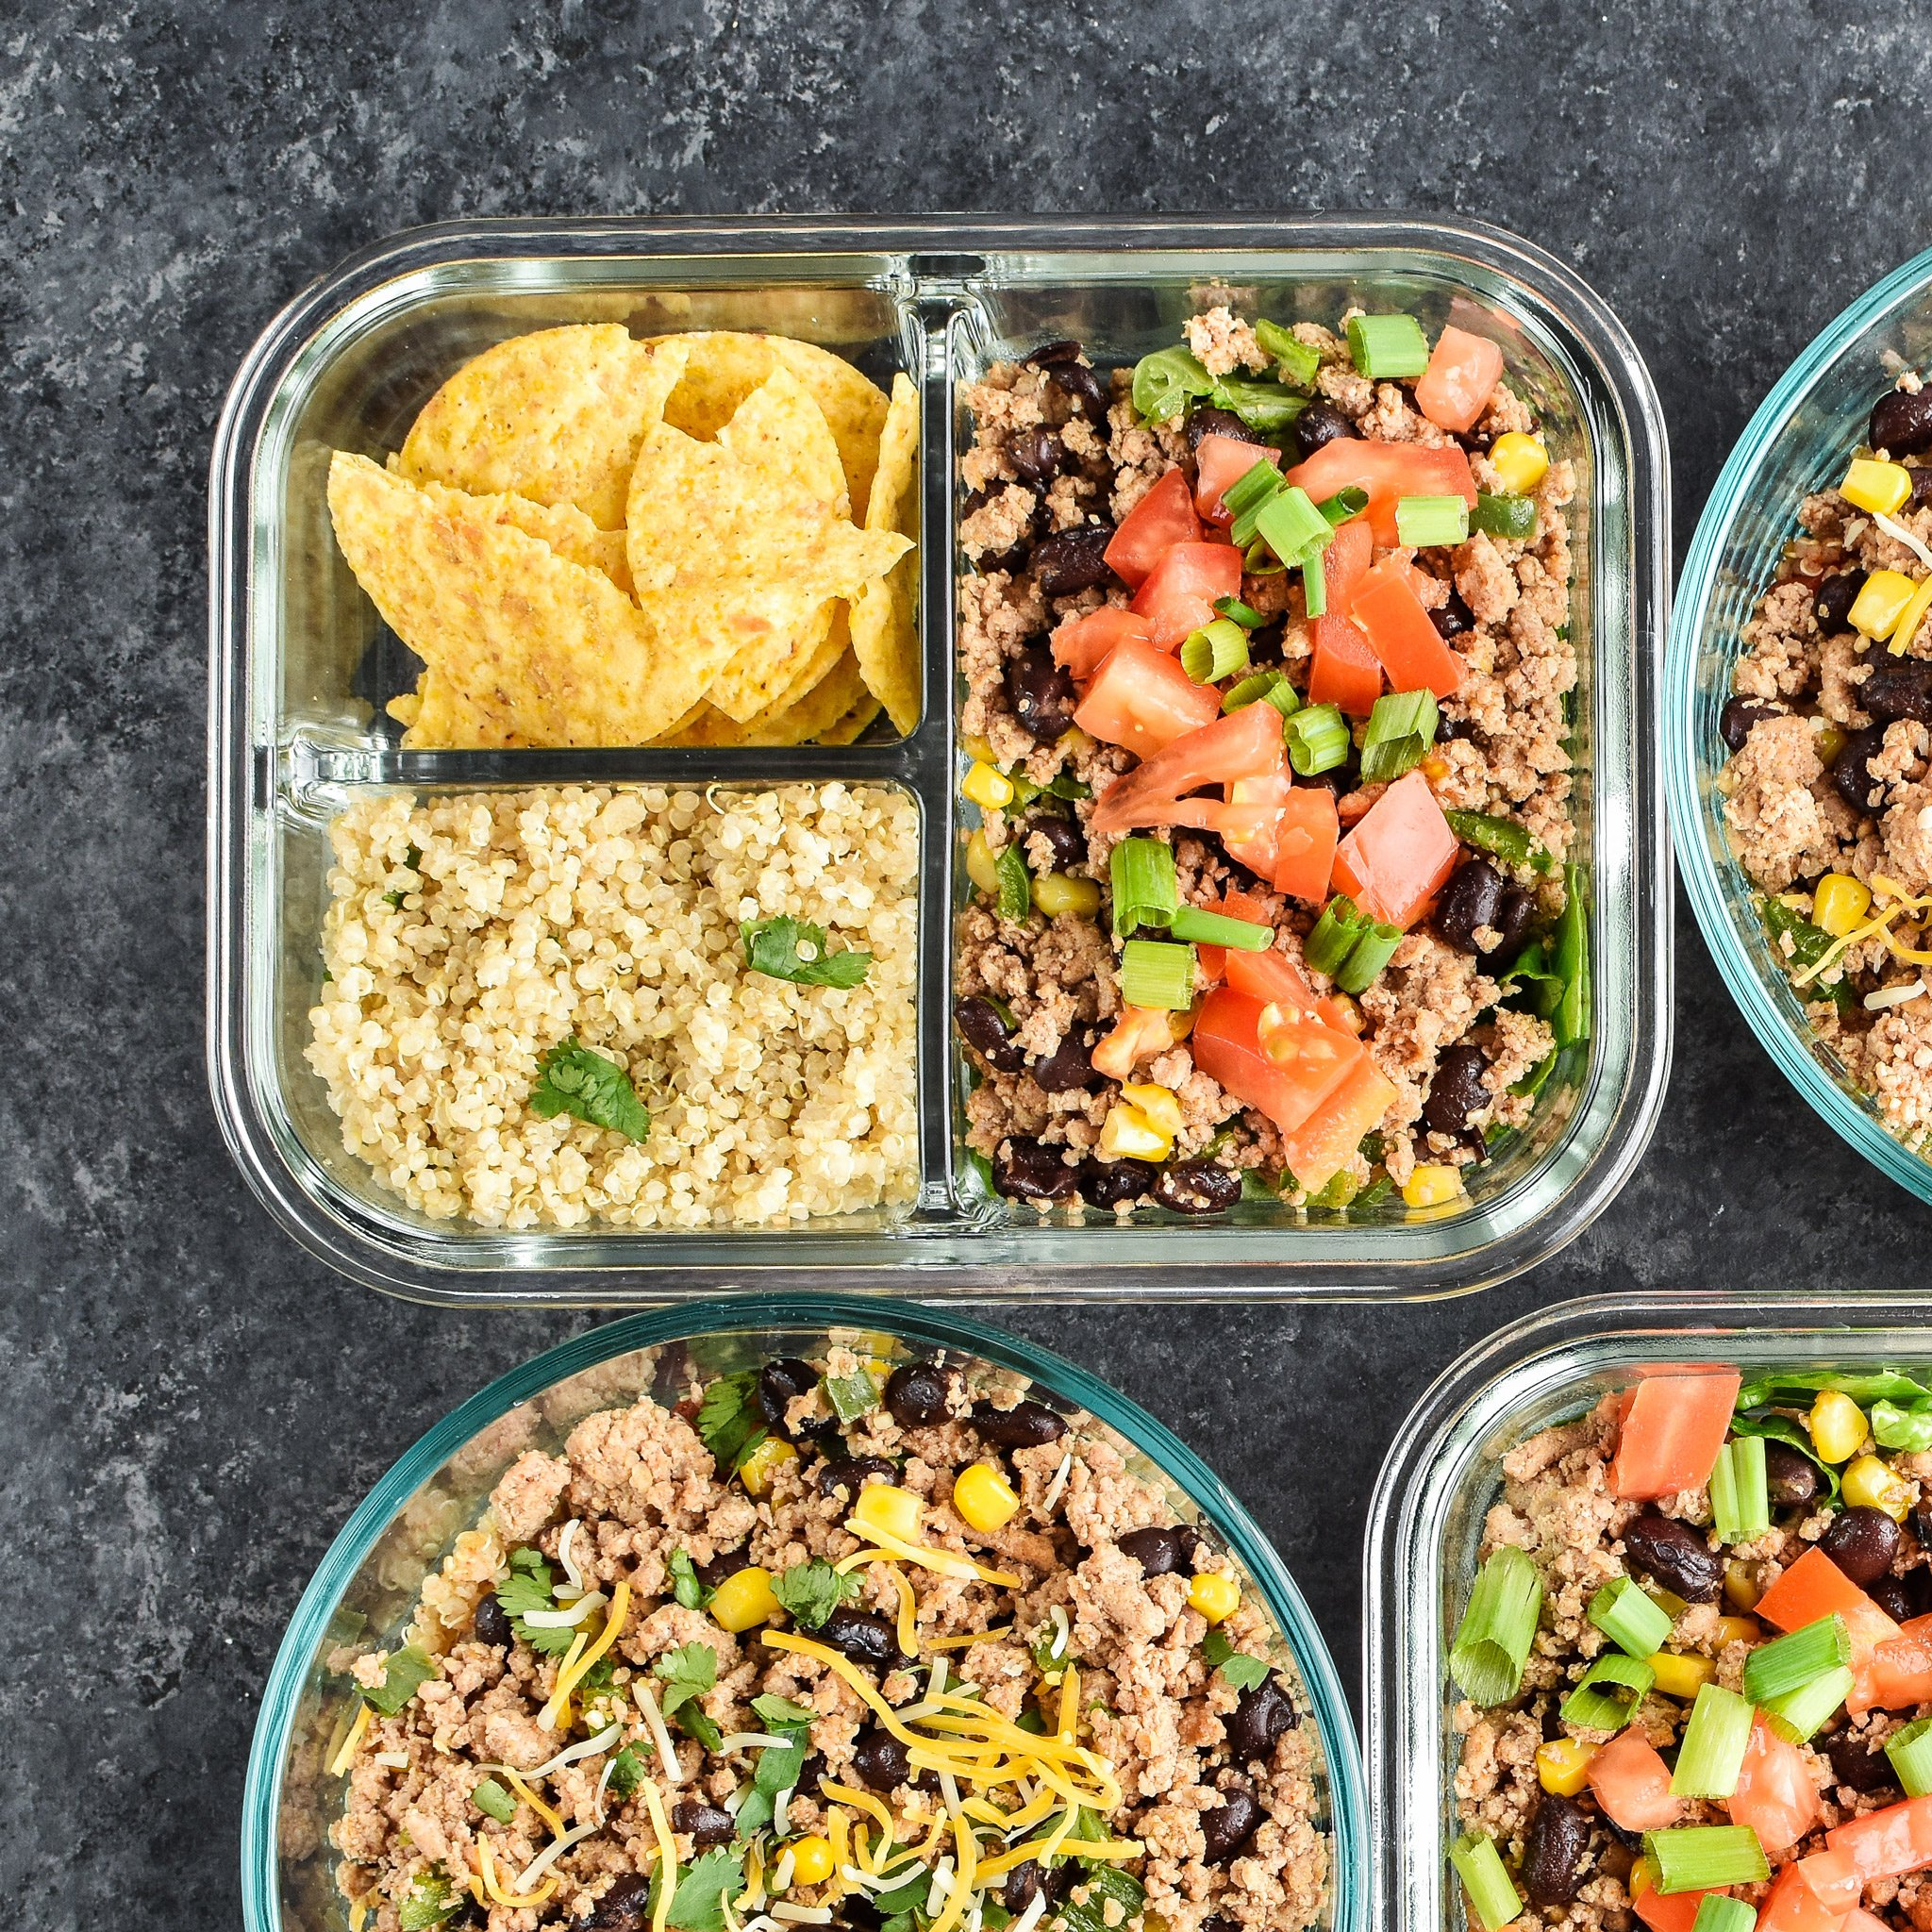 Meal prepped lunches viewed from above for Hot & Cold Turkey Taco Meal Prep; two taco salads with quinoa and chips on the side and two taco bowls with tomato and green chili quinoa.